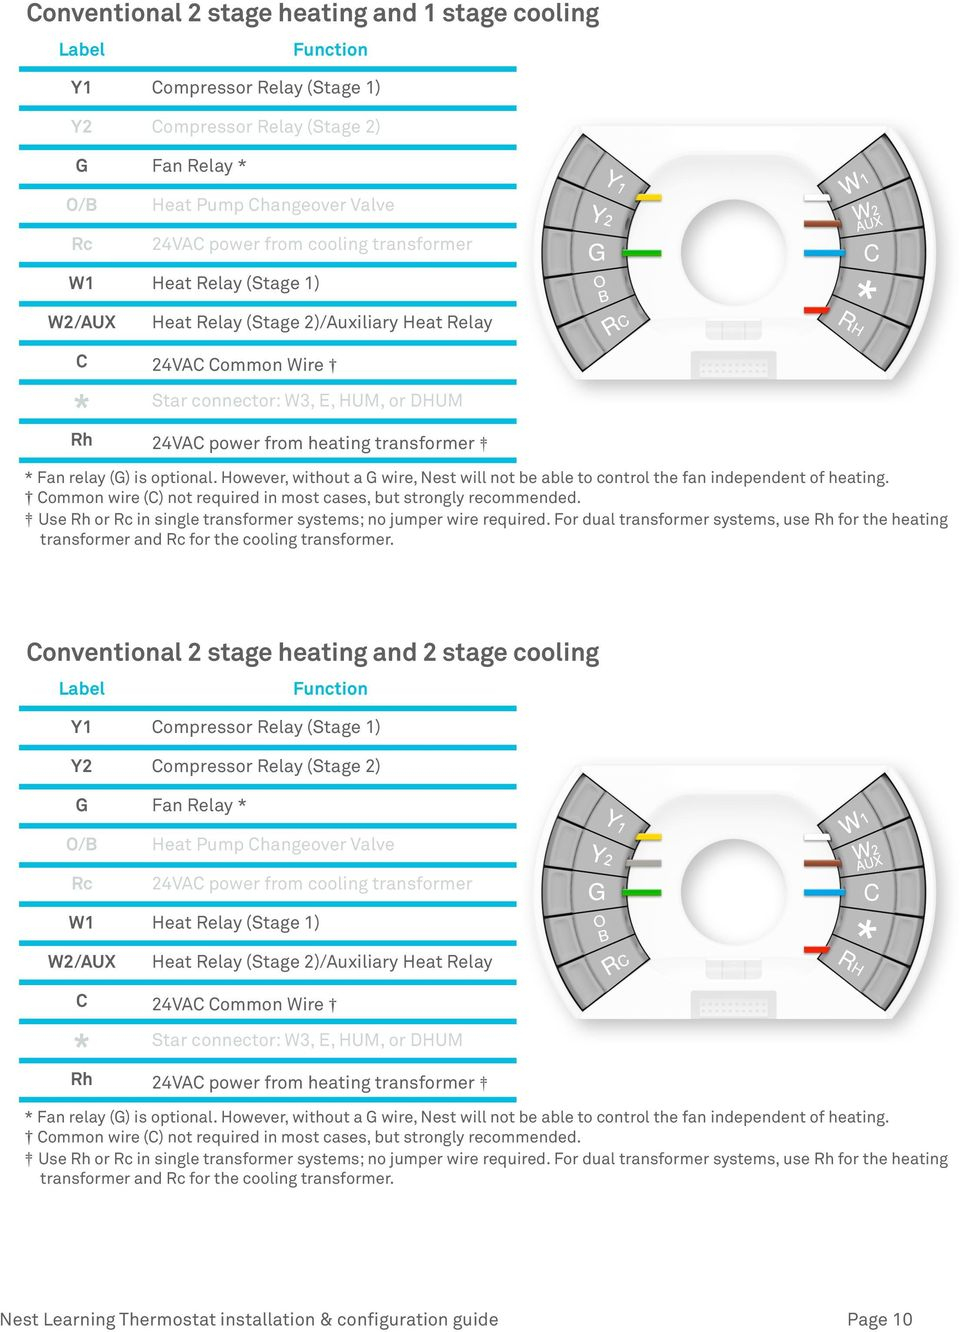 Nest Learning Thermostat Pro Installation & Configuration Guide - Pdf - Nest Wiring Diagram Heat Pump, Air Conditioner, Boiler